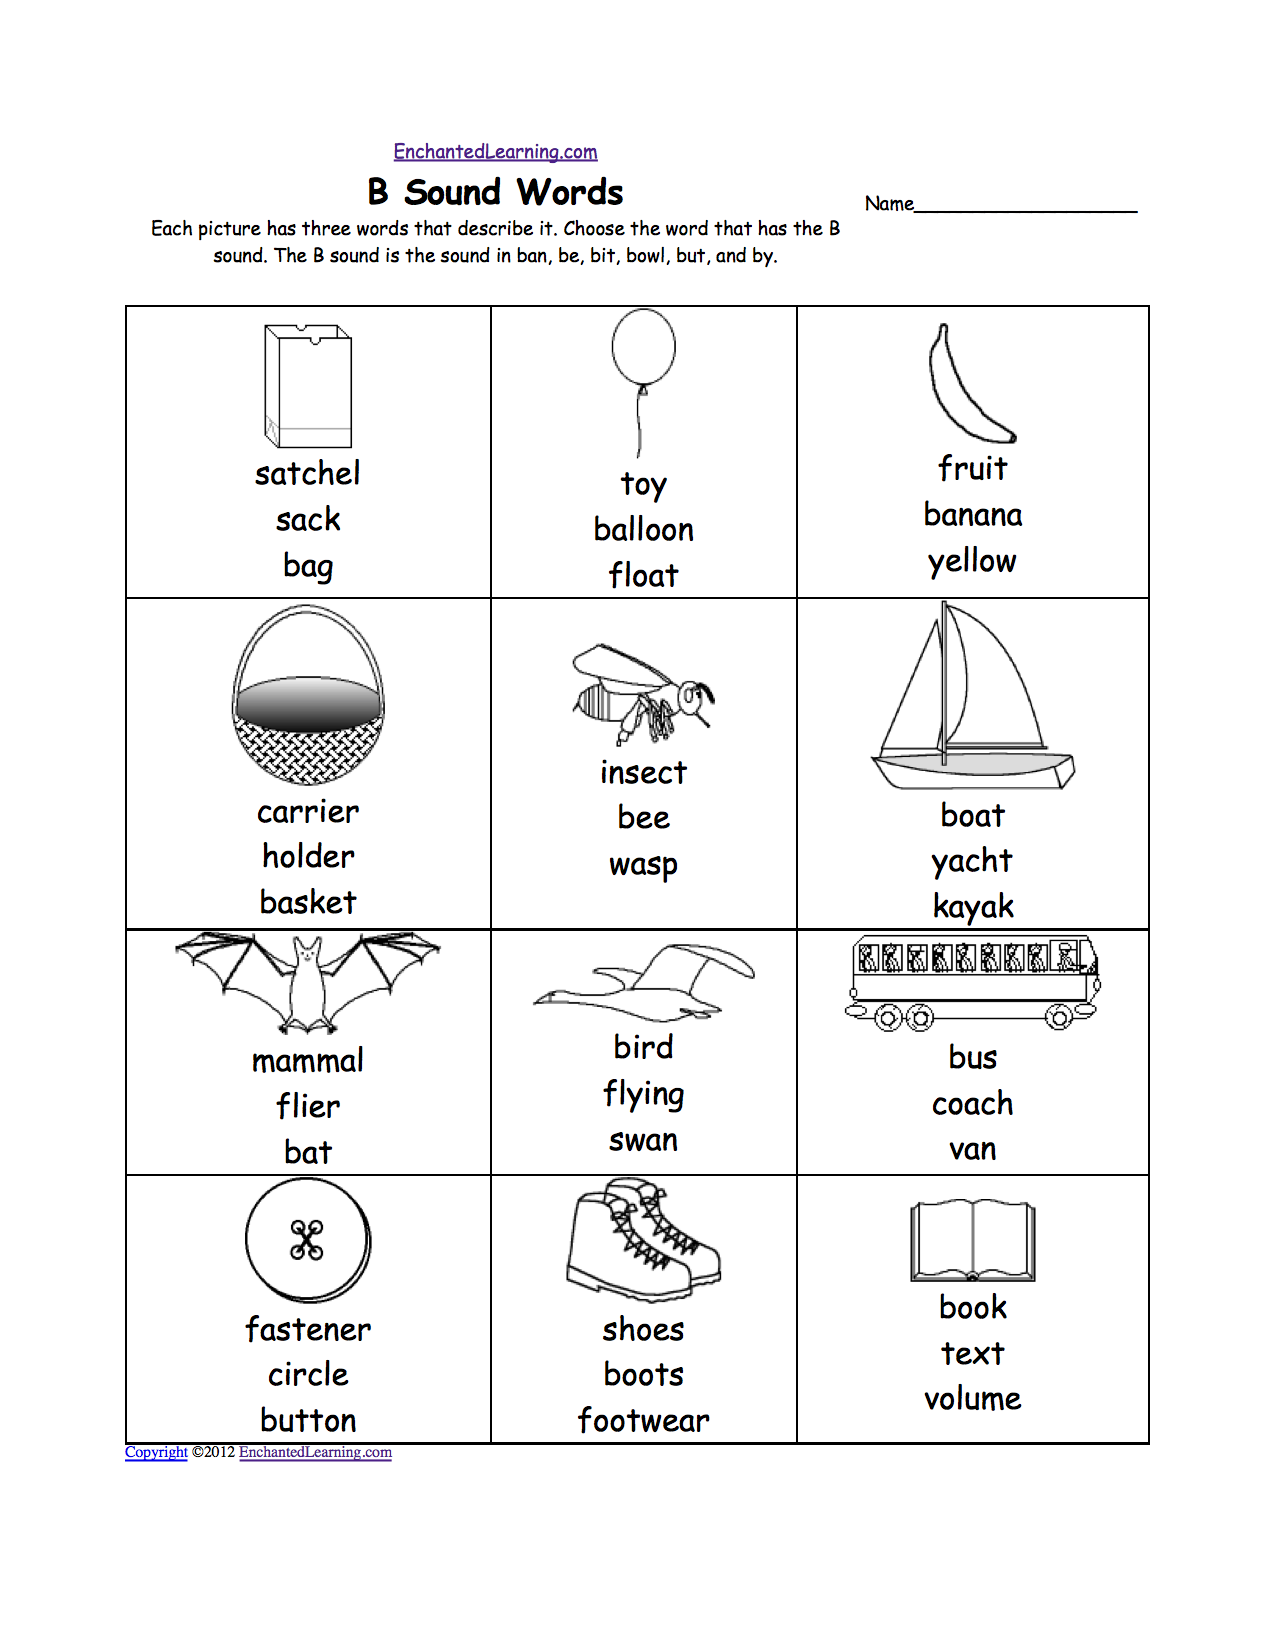 Weirdmailus  Gorgeous Phonics Worksheets Multiple Choice Worksheets To Print  With Handsome Quotbquot Sound Phonics Worksheet Multiple Choice Each Picture Has Three Words That Describe It Choose The Word That Has A Quotbquot Sound The Quotbquot Sound Is The Sound  With Adorable Prime Composite Worksheets Also Ea Worksheet In Addition Atlas Worksheets And Associative Property Of Addition Worksheet As Well As Prepositional Phrases As Adjectives And Adverbs Worksheets Additionally Printable Capitalization Worksheets From Enchantedlearningcom With Weirdmailus  Handsome Phonics Worksheets Multiple Choice Worksheets To Print  With Adorable Quotbquot Sound Phonics Worksheet Multiple Choice Each Picture Has Three Words That Describe It Choose The Word That Has A Quotbquot Sound The Quotbquot Sound Is The Sound  And Gorgeous Prime Composite Worksheets Also Ea Worksheet In Addition Atlas Worksheets From Enchantedlearningcom